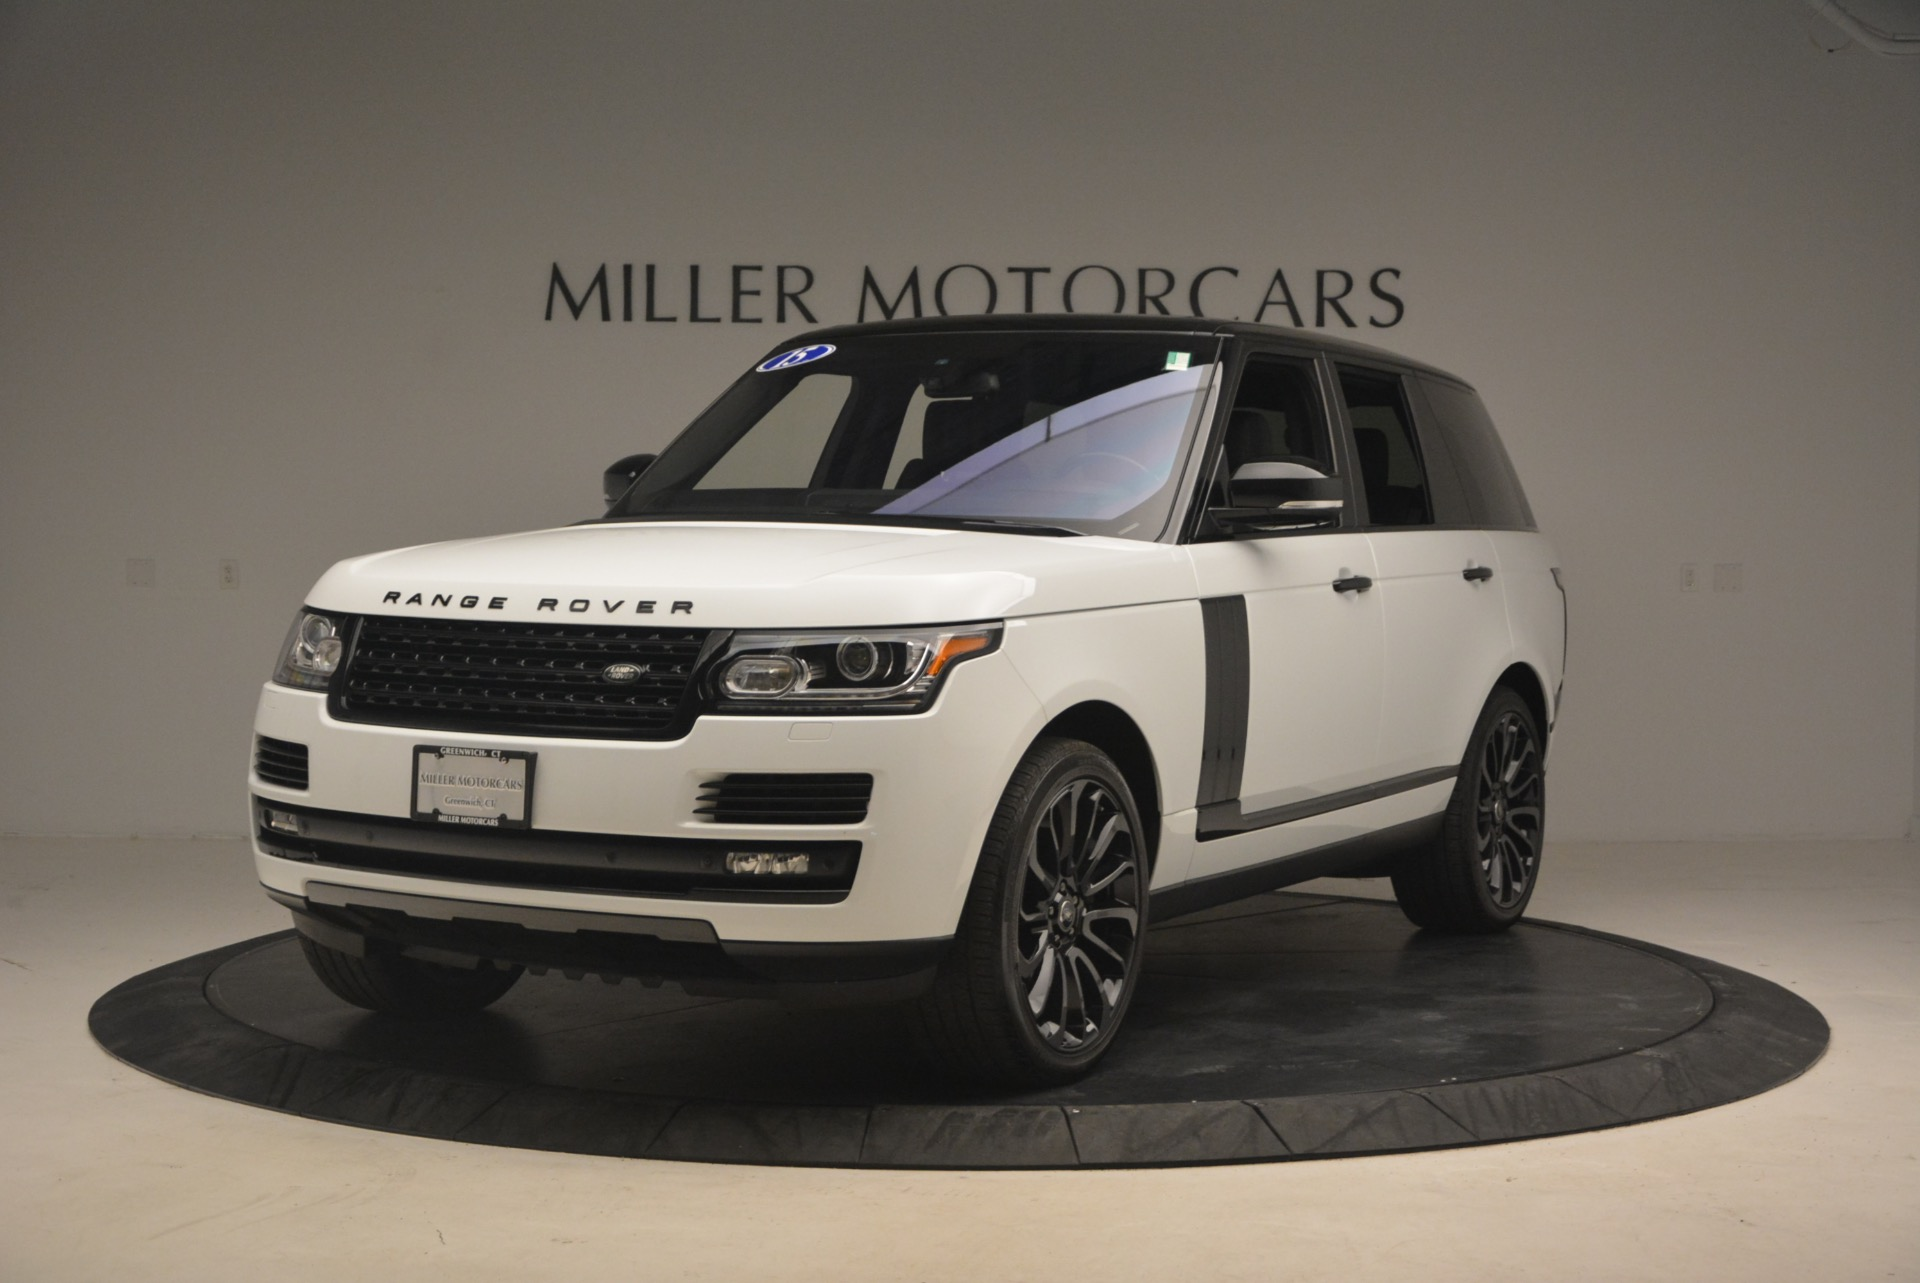 Used 2015 Land Rover Range Rover Supercharged for sale Sold at Pagani of Greenwich in Greenwich CT 06830 1